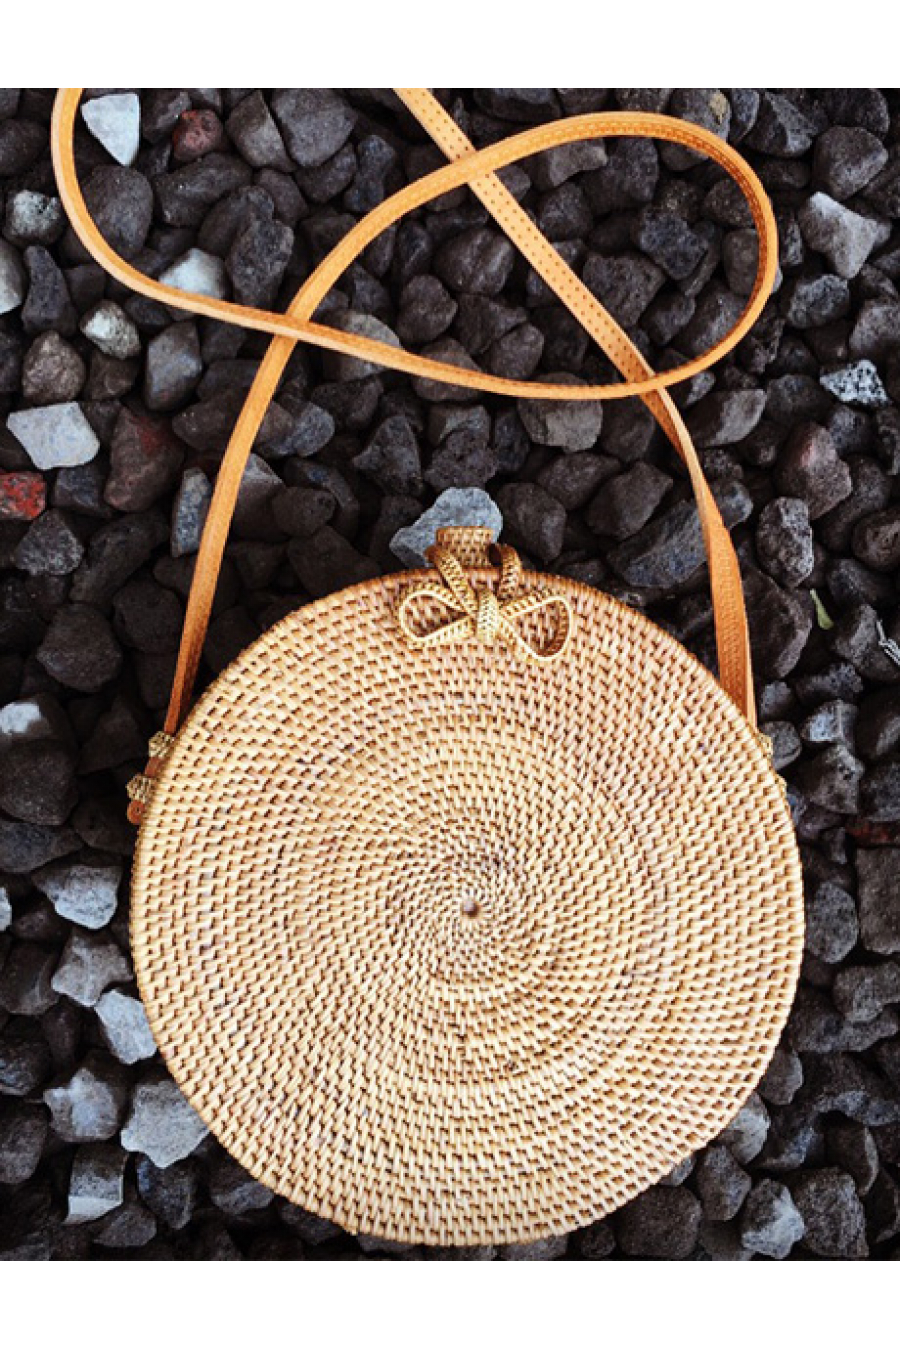 THE BALI FASHION - Round Bag Ubud